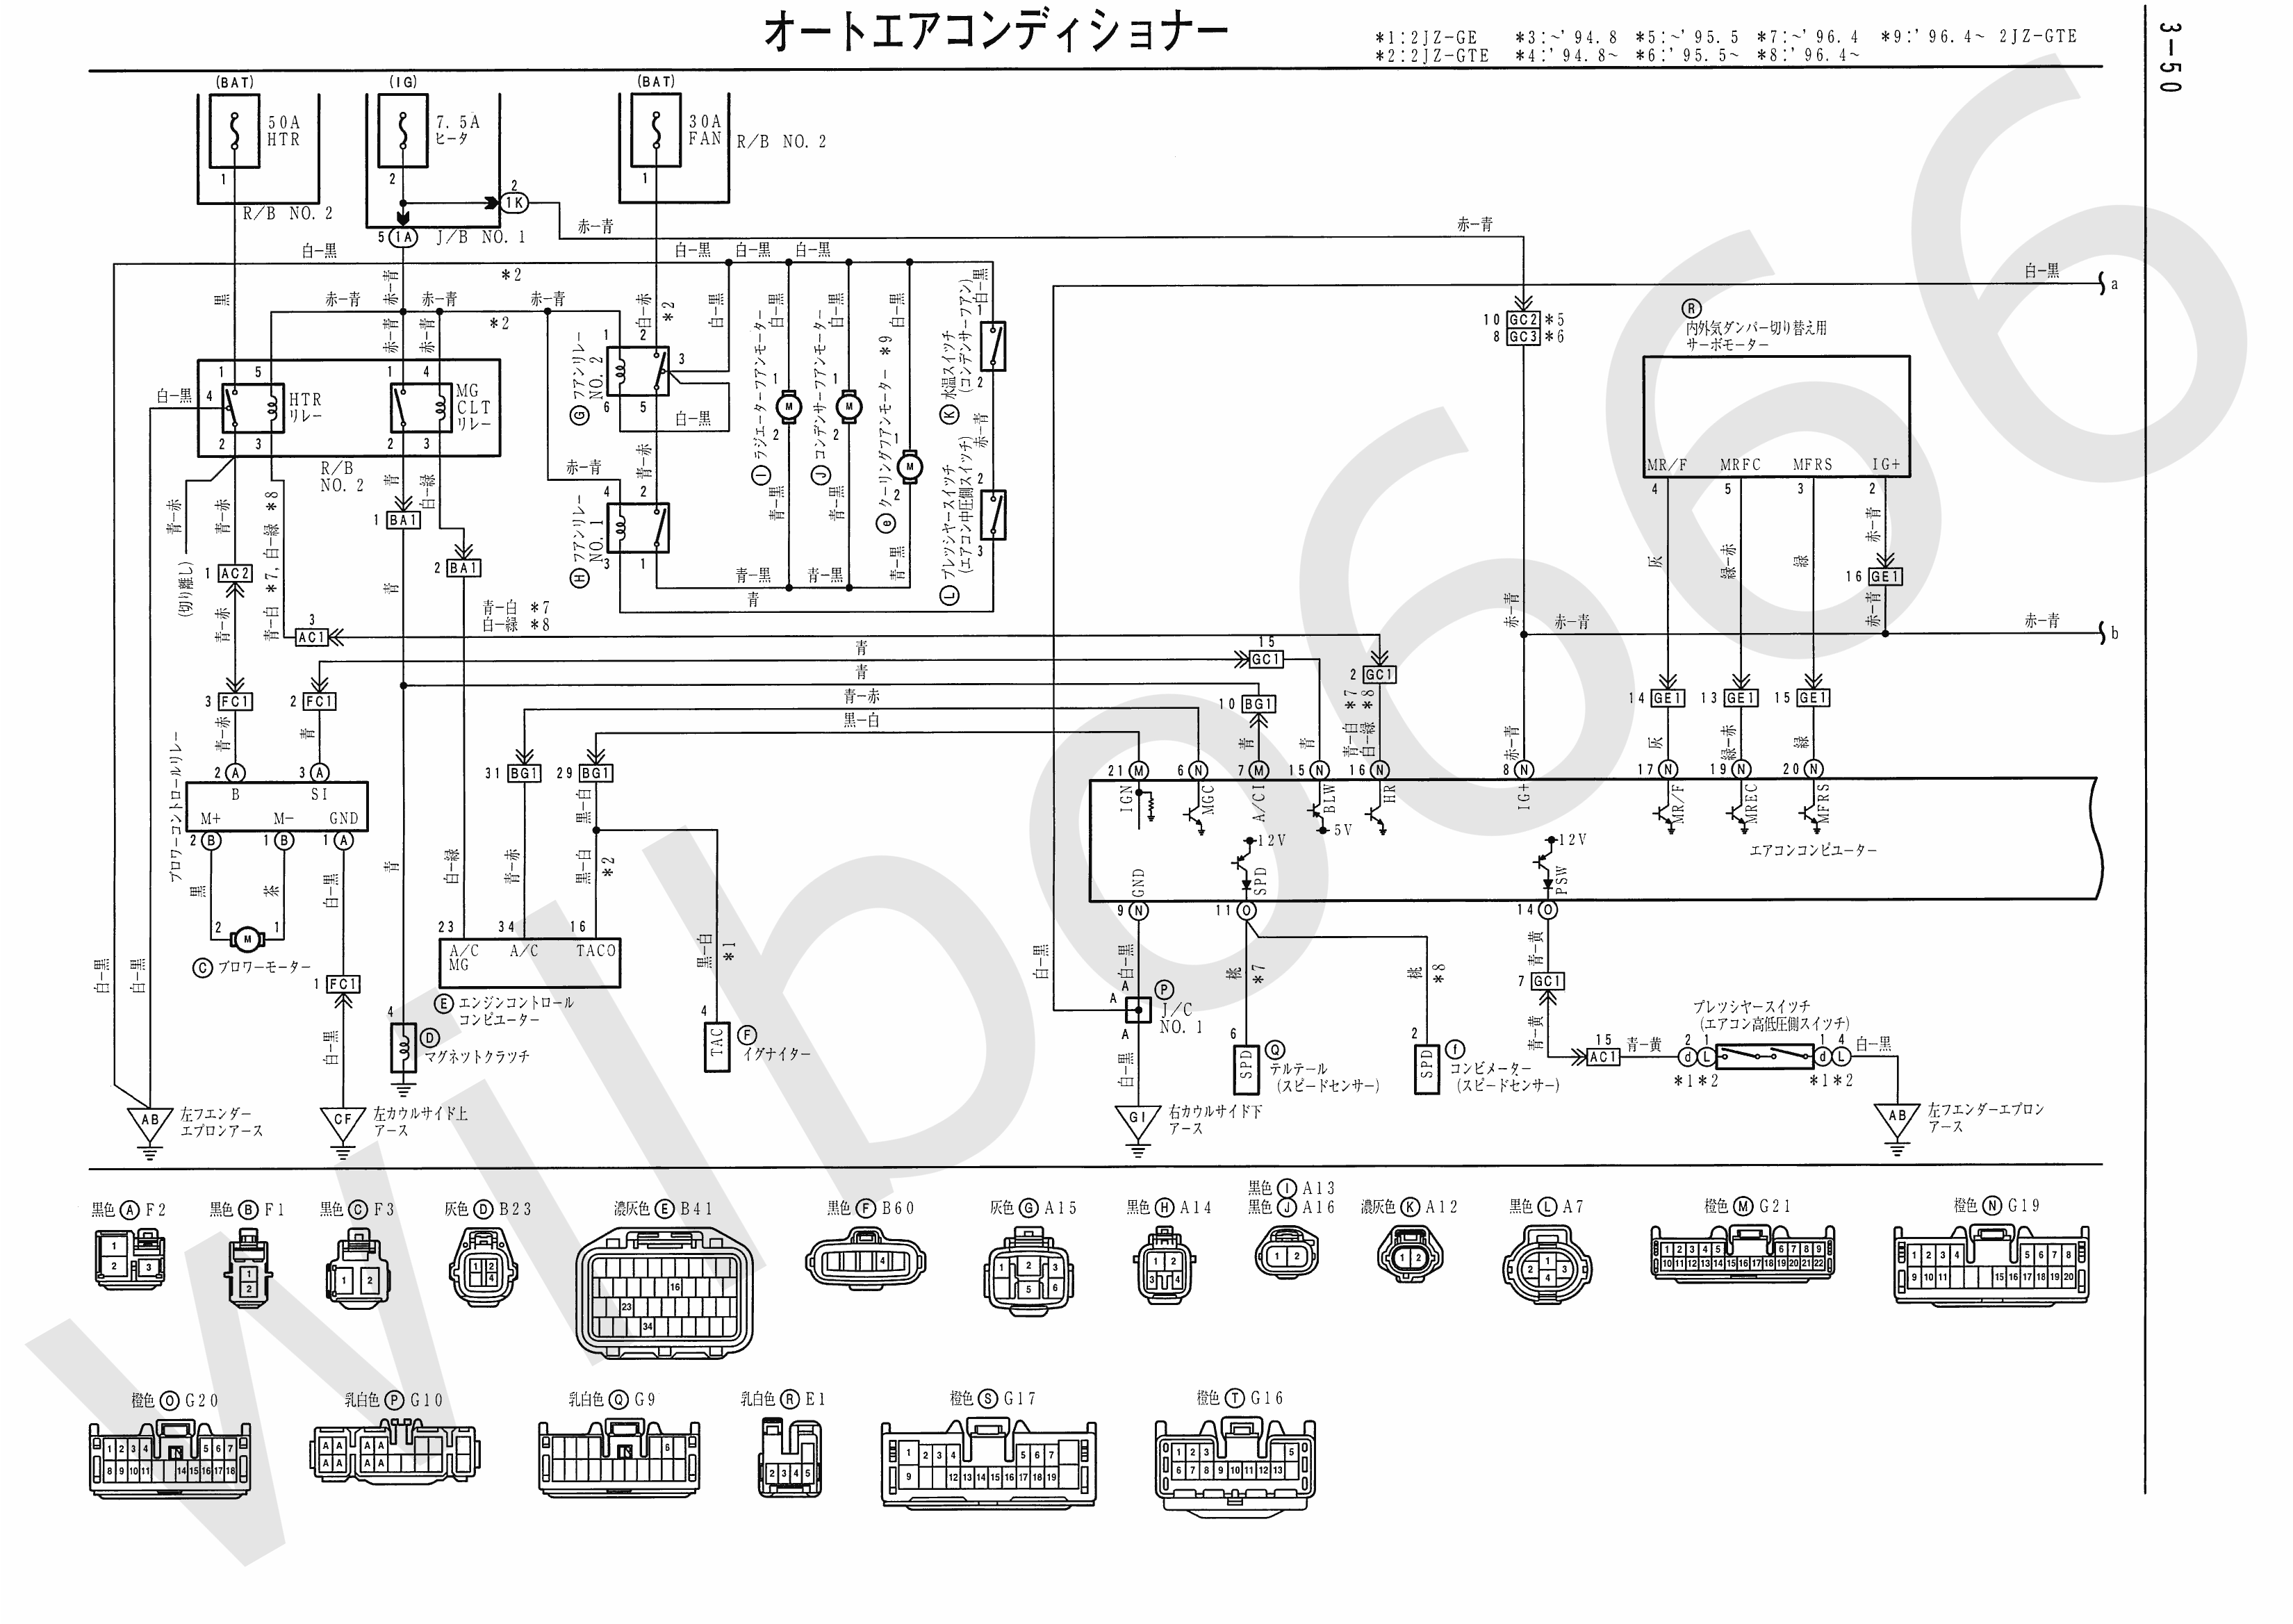 JZA80 Electrical Wiring Diagram 6742505 3 50 wilbo666 2jz ge jza80 supra engine wiring SC300 Pinout Plug Orange Interior at couponss.co